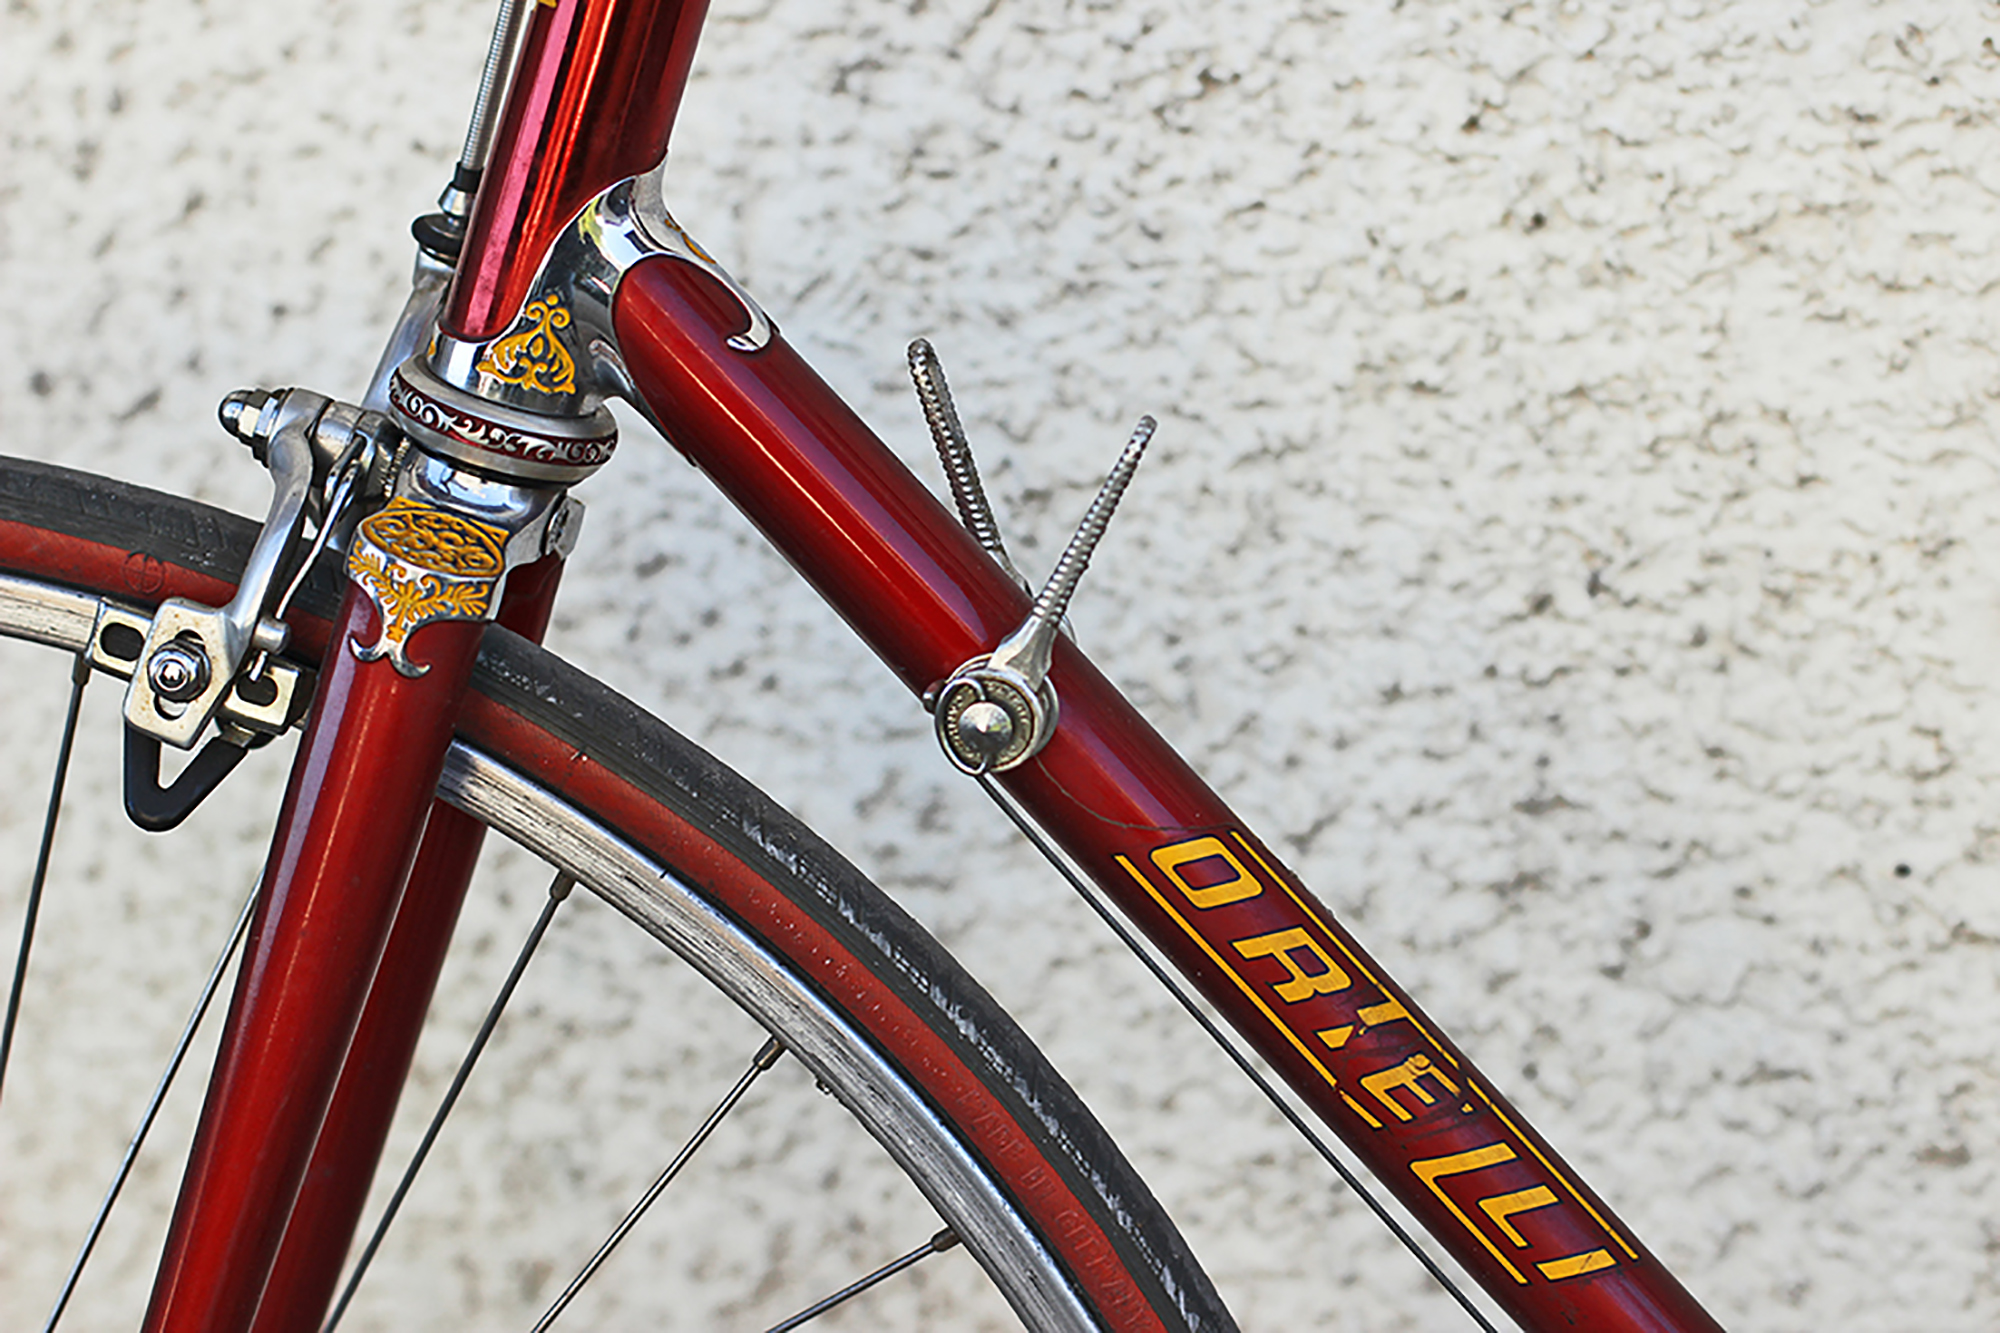 ortelli-1984-road-bike-frame 8